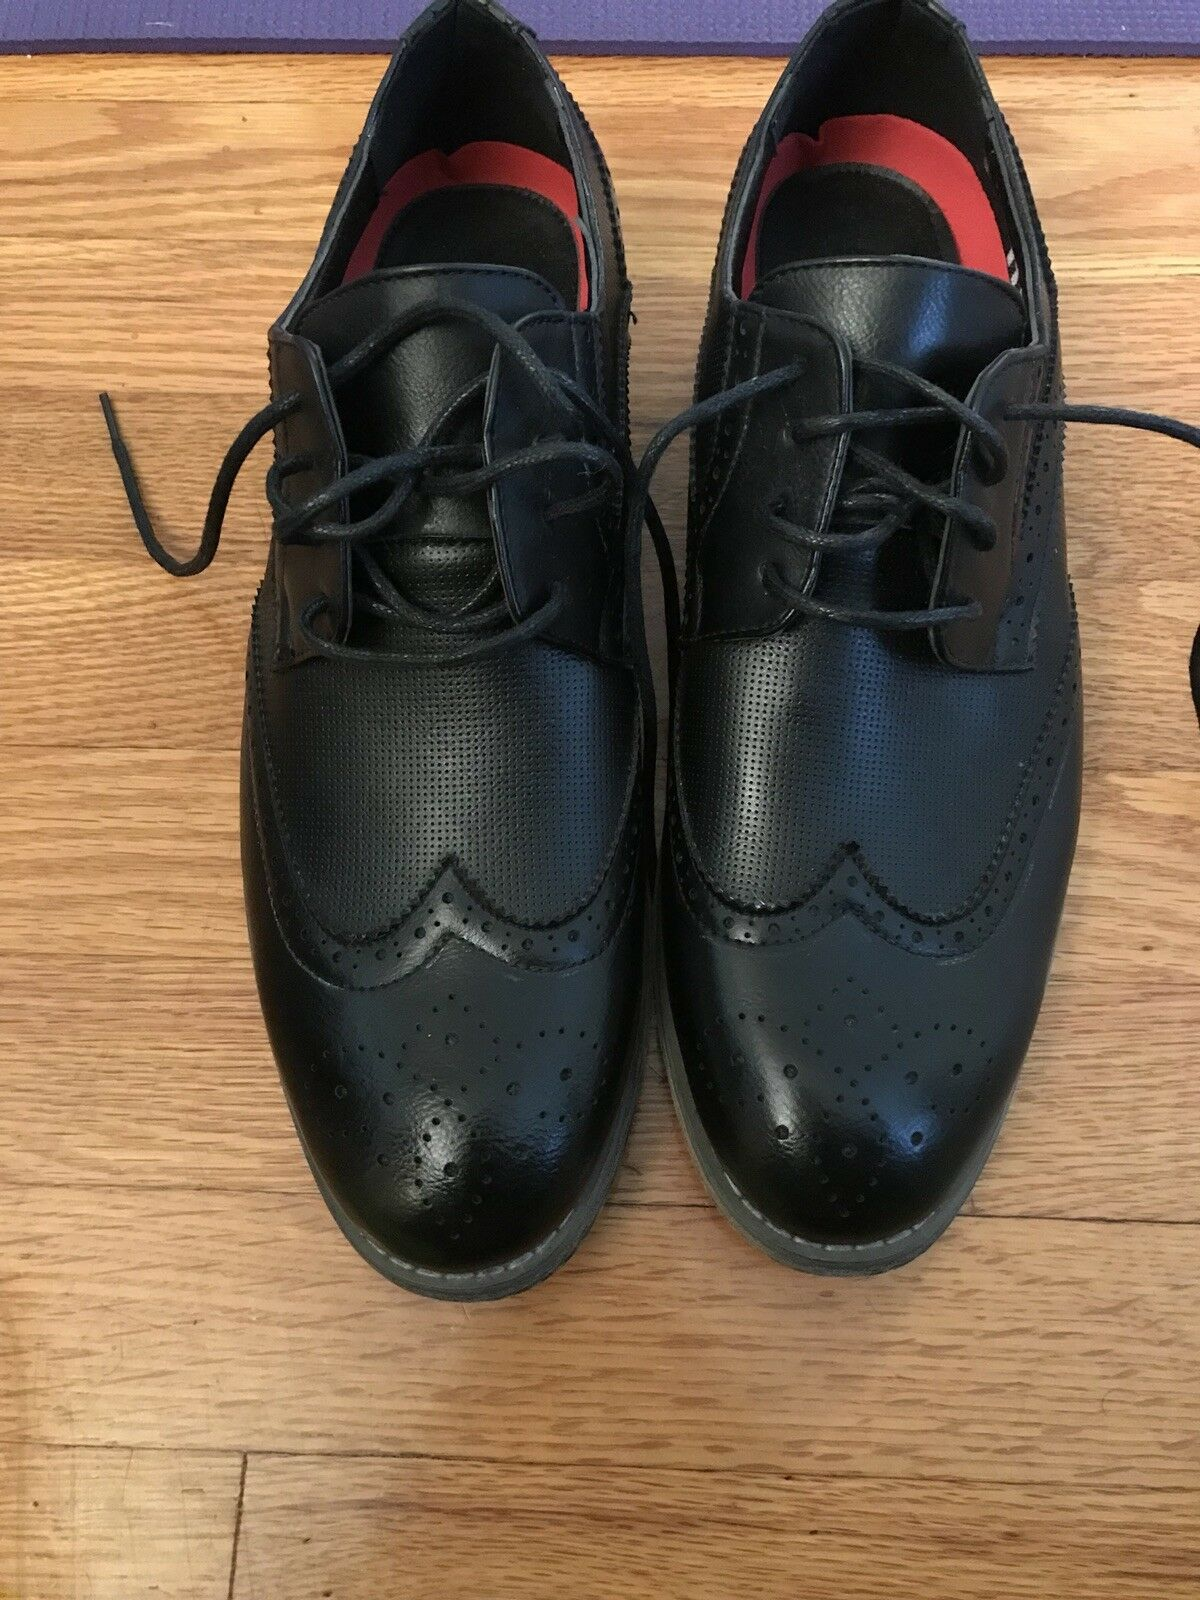 Tony's Casual Black Dress shoes 10